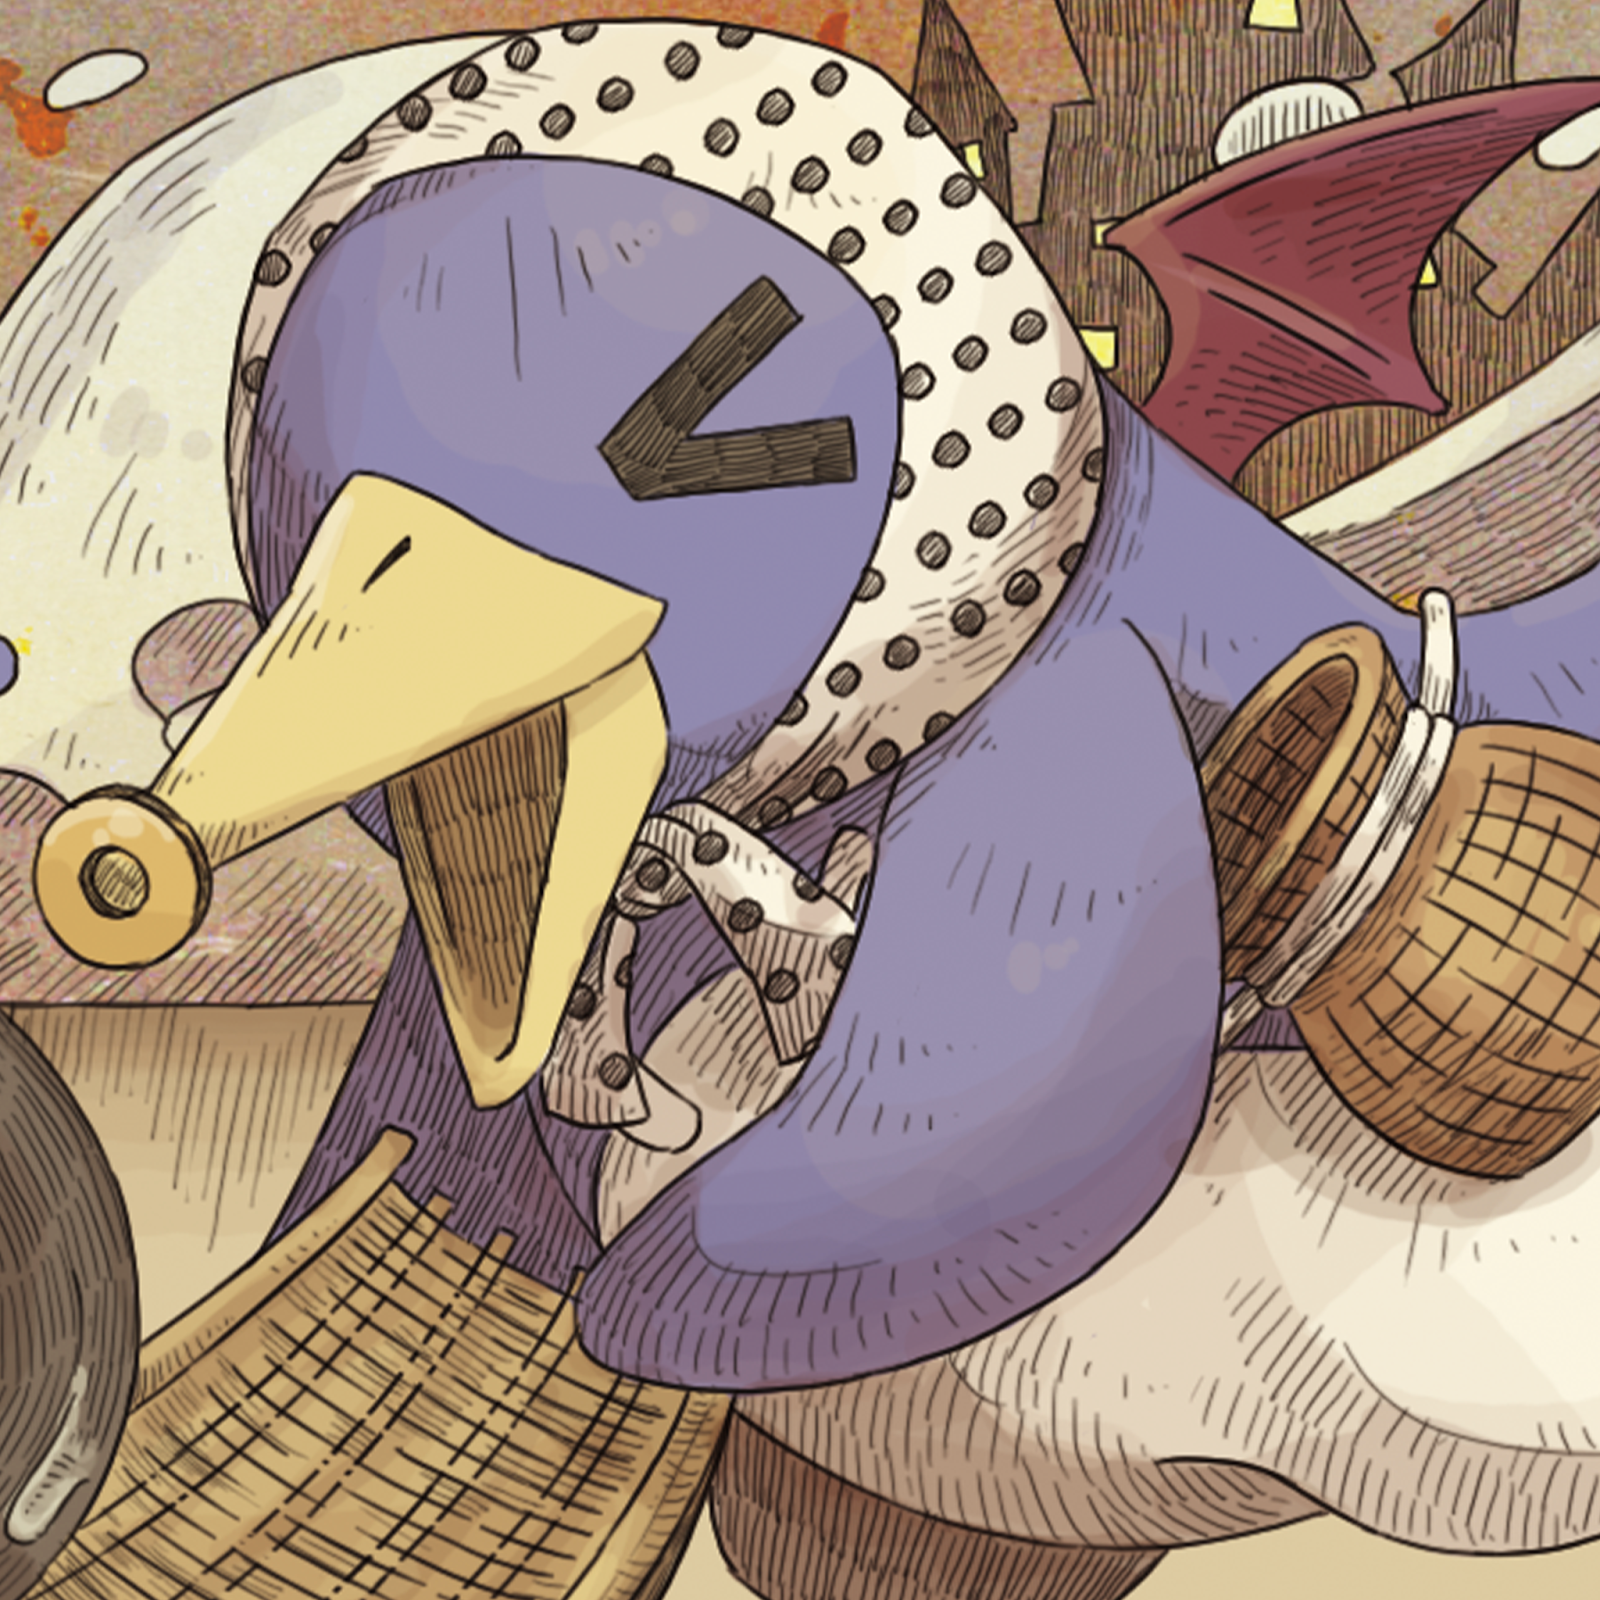 FREE PRINNY AVATARS & THEMES AVAILABLE NOW ON PSN | NIS